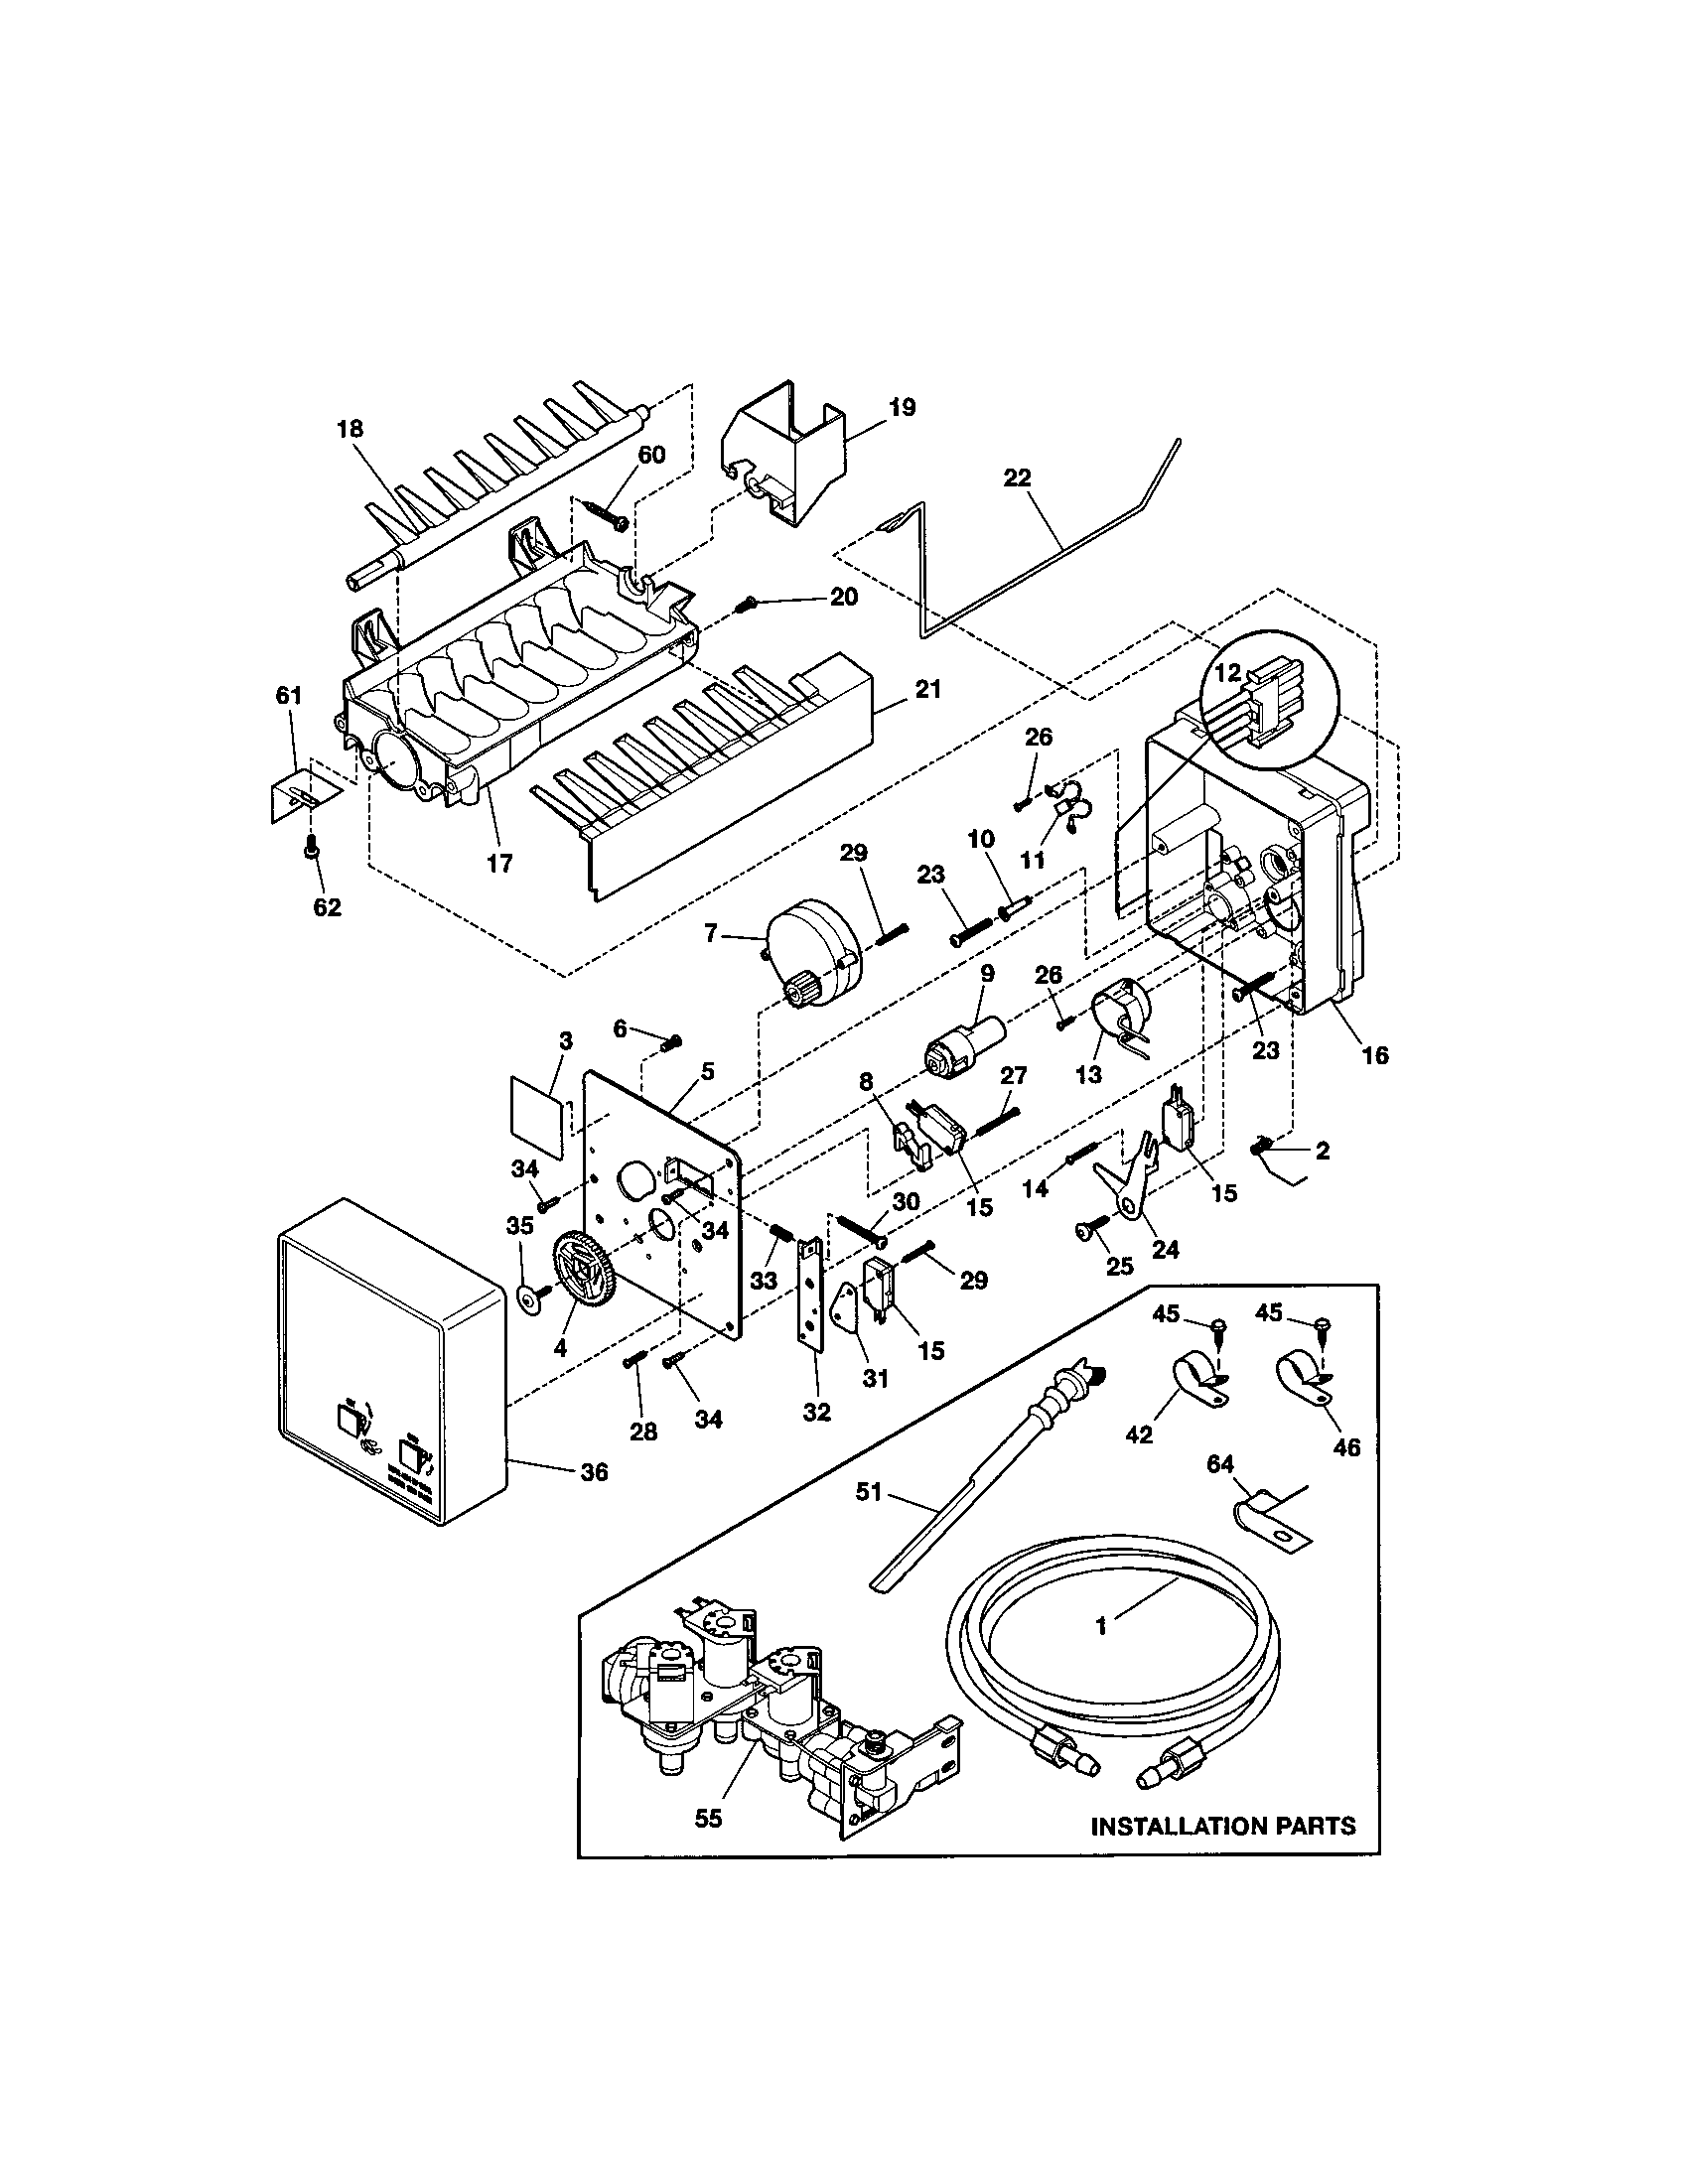 ICE MAKER Diagram & Parts List for Model 25351232102